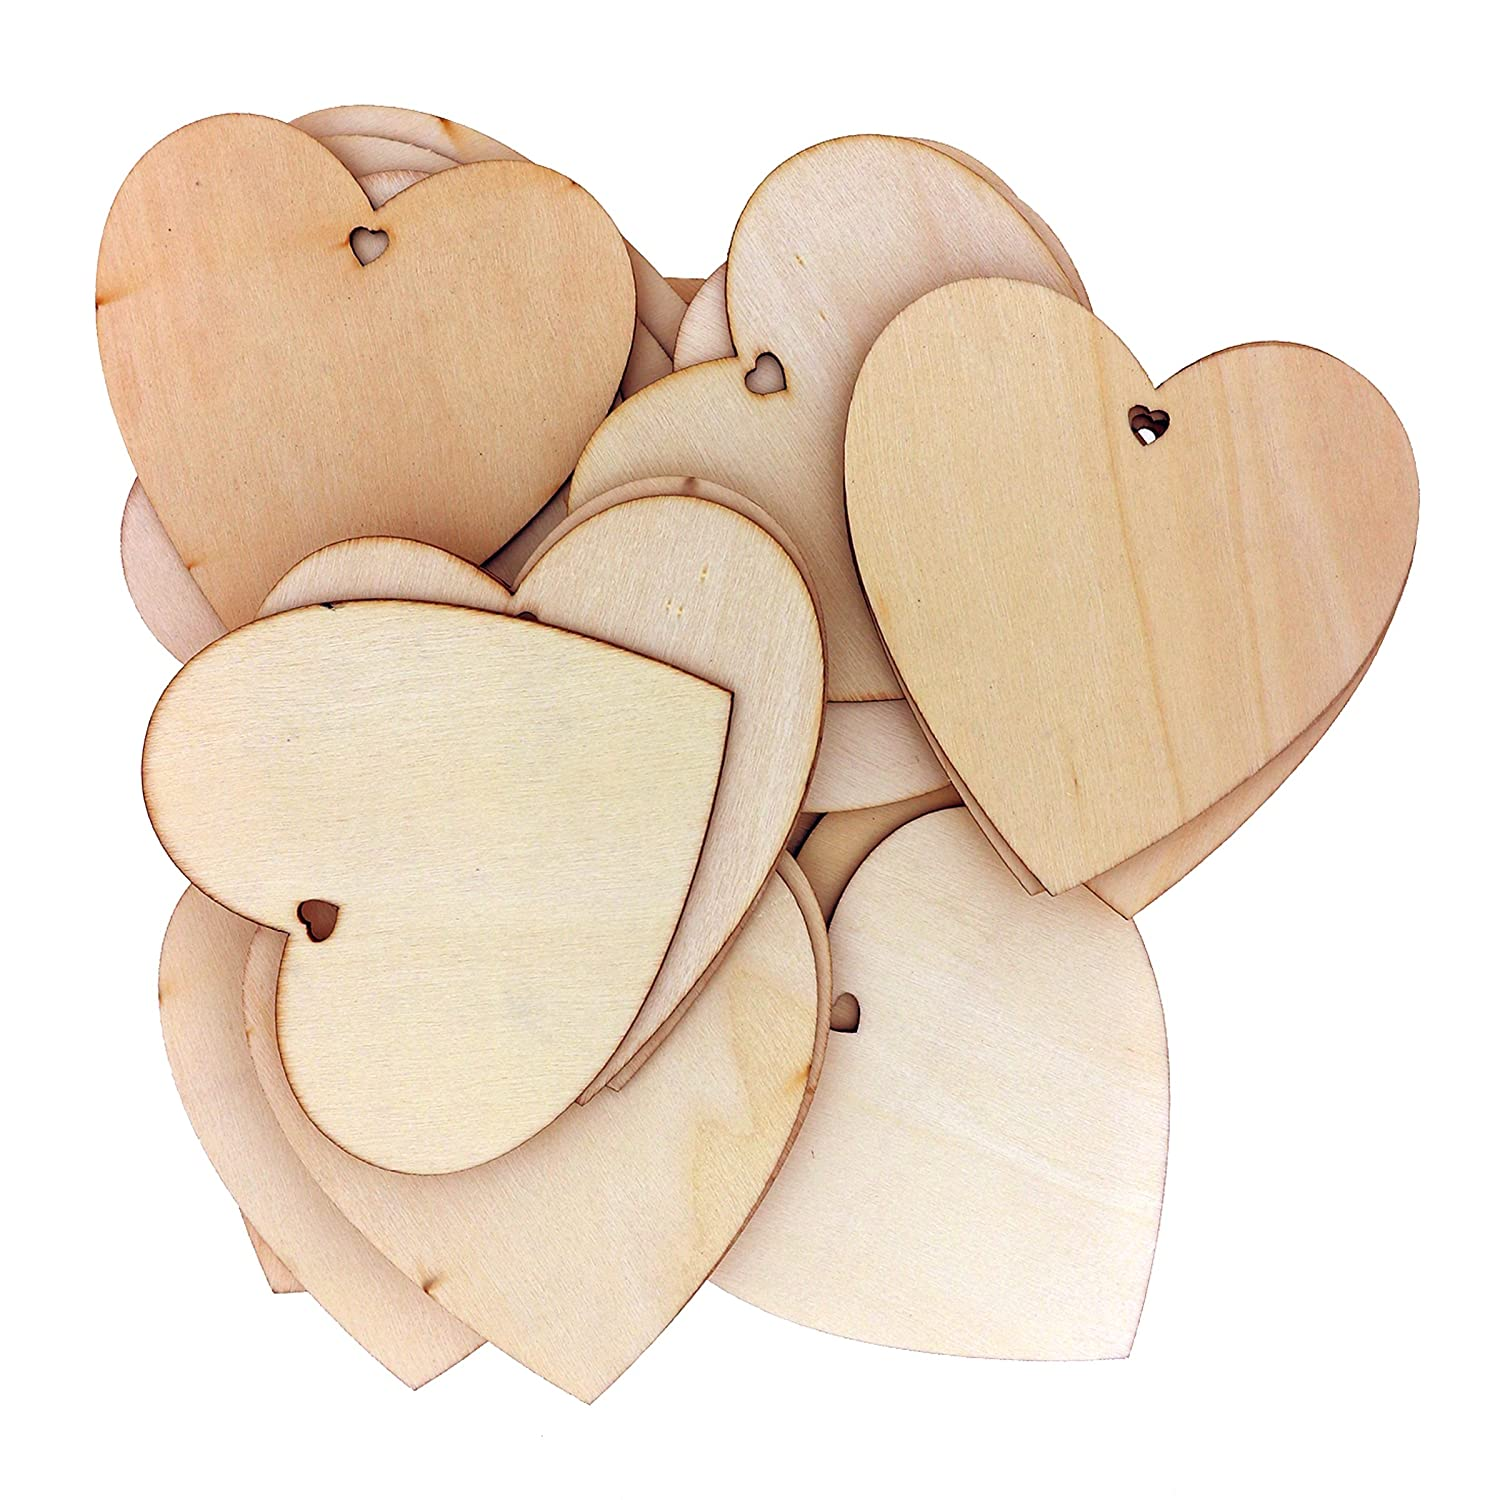 50 Decorative Wooden Heart Shape by Kurtzy - 10 x 10cm Craft Tags Plaques Suitable for Wedding Reception, Centerpieces, Table Decorations, and Events - Natural Unfinished Wood Heart Shaped Cutout MA-6001